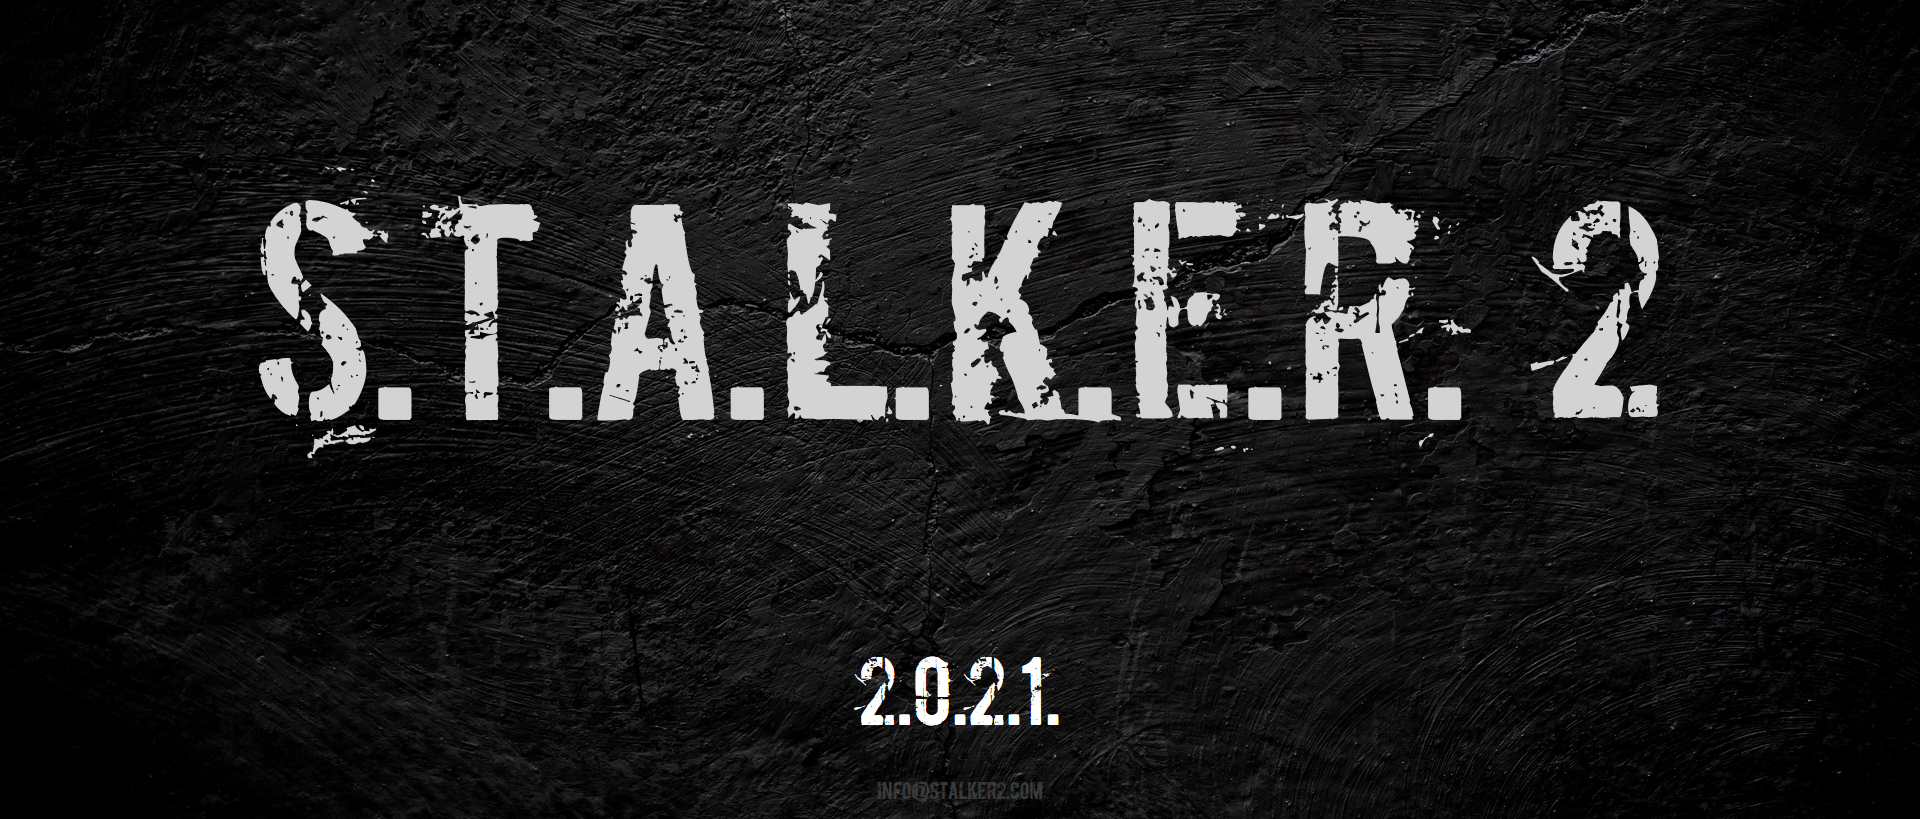 S.T.A.L.K.E.R. 2 is coming in 2021, apparently screenshot